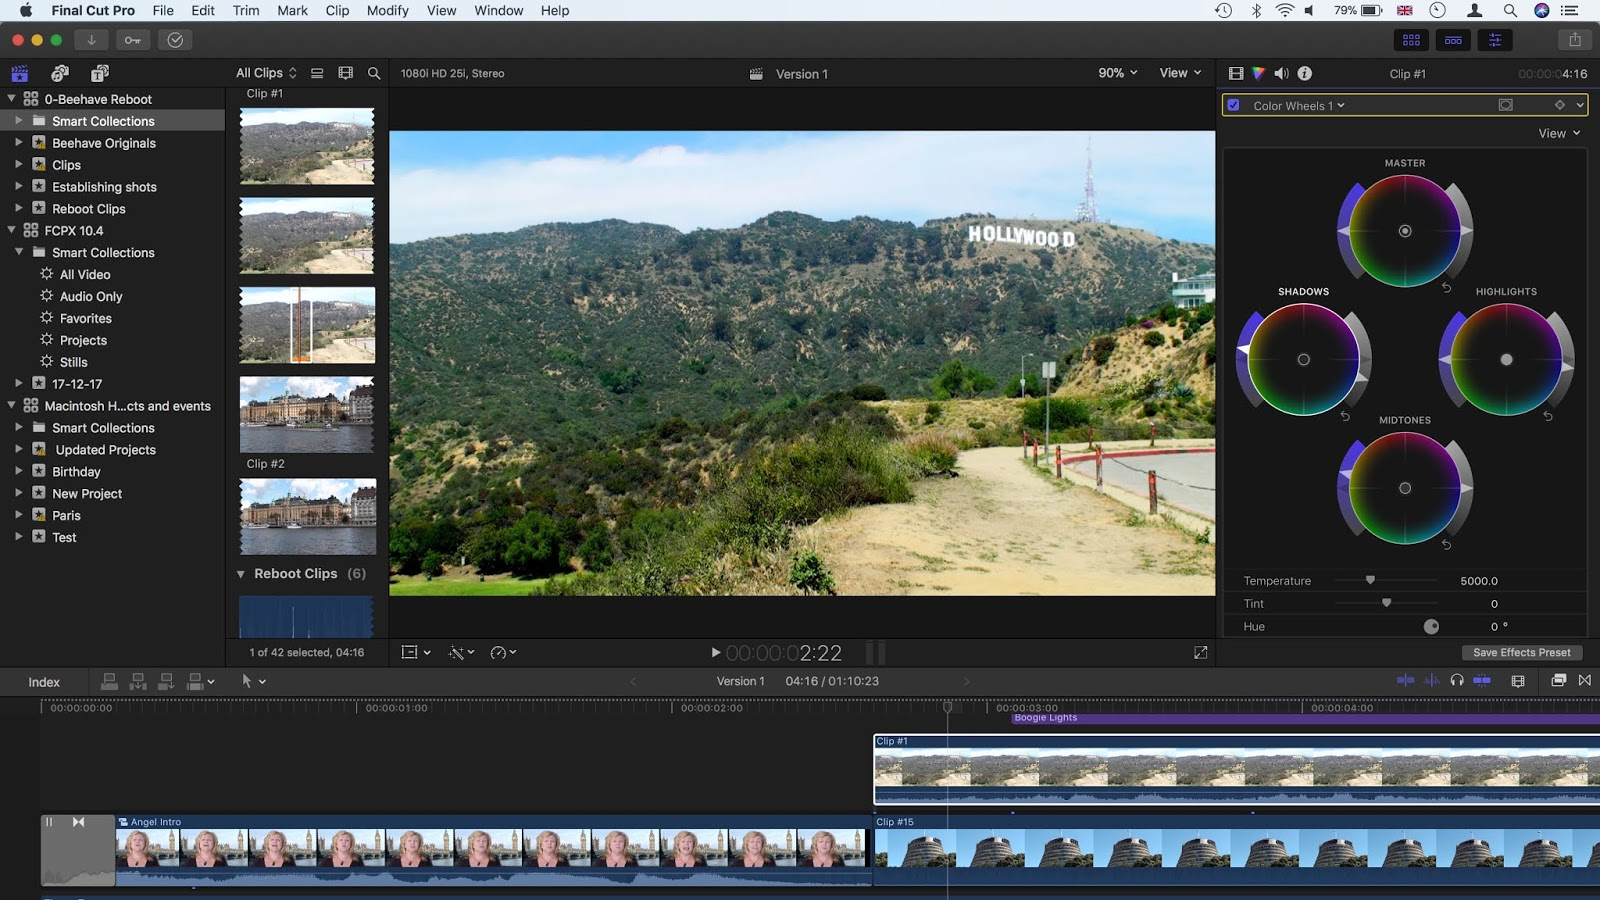 The Best Video Editing Software for Content Creators